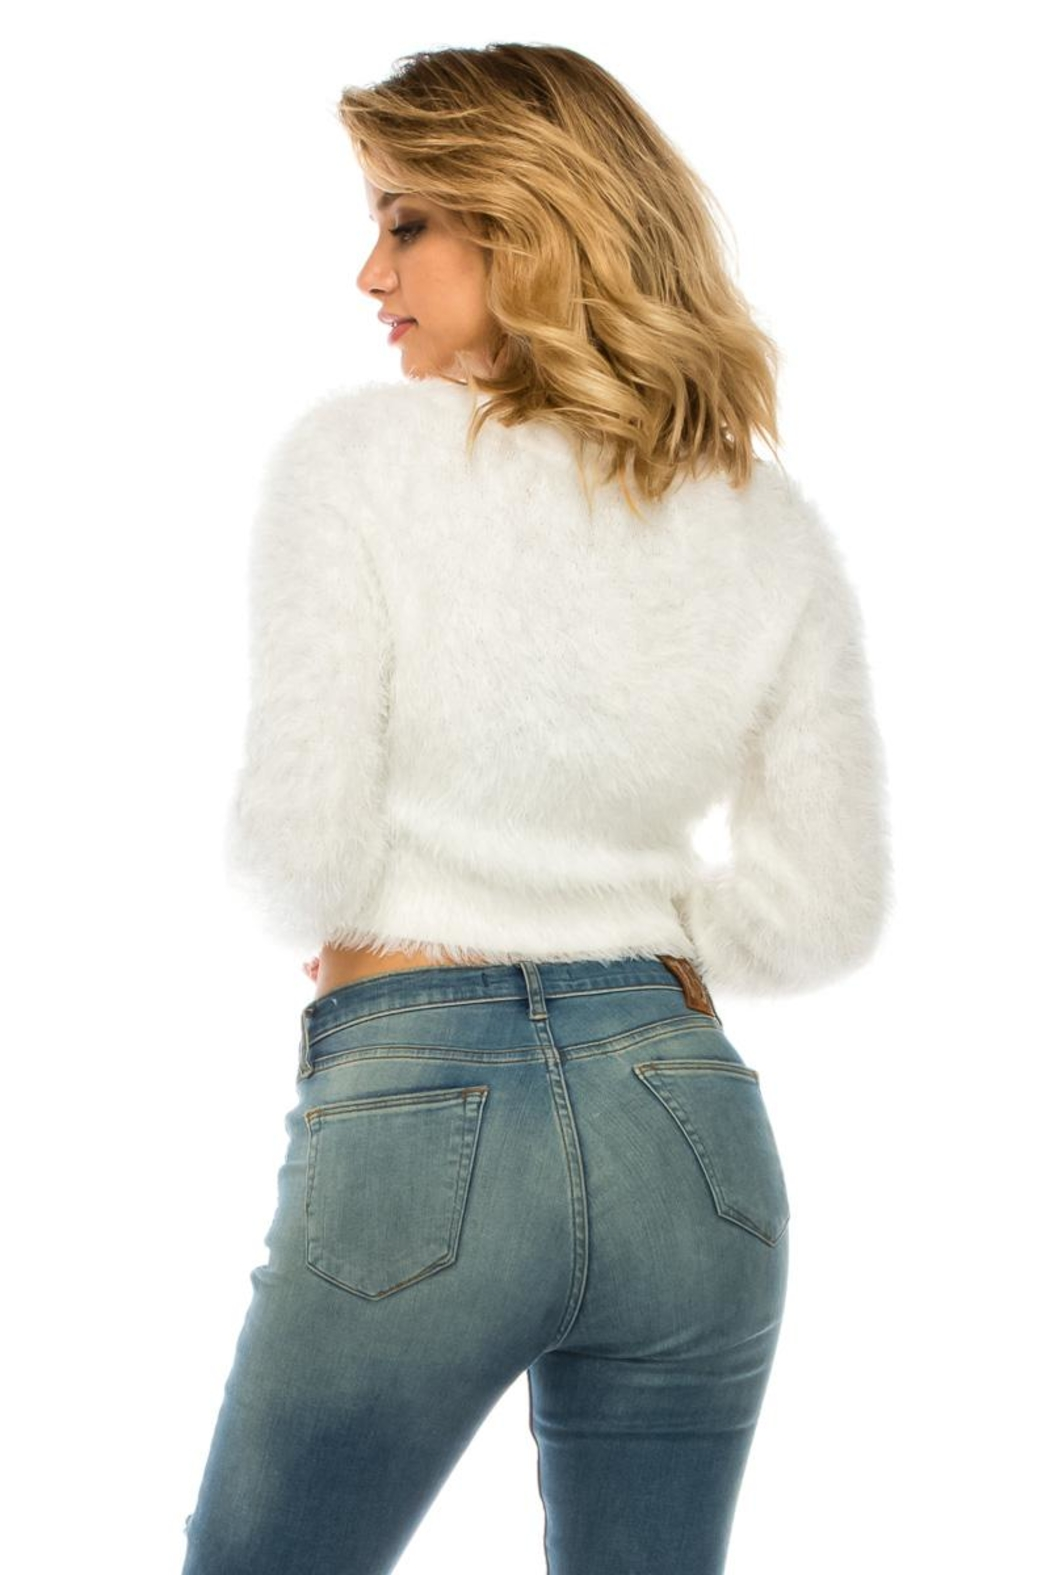 Uniq White Fuzzy Cardigan - Back Cropped Image